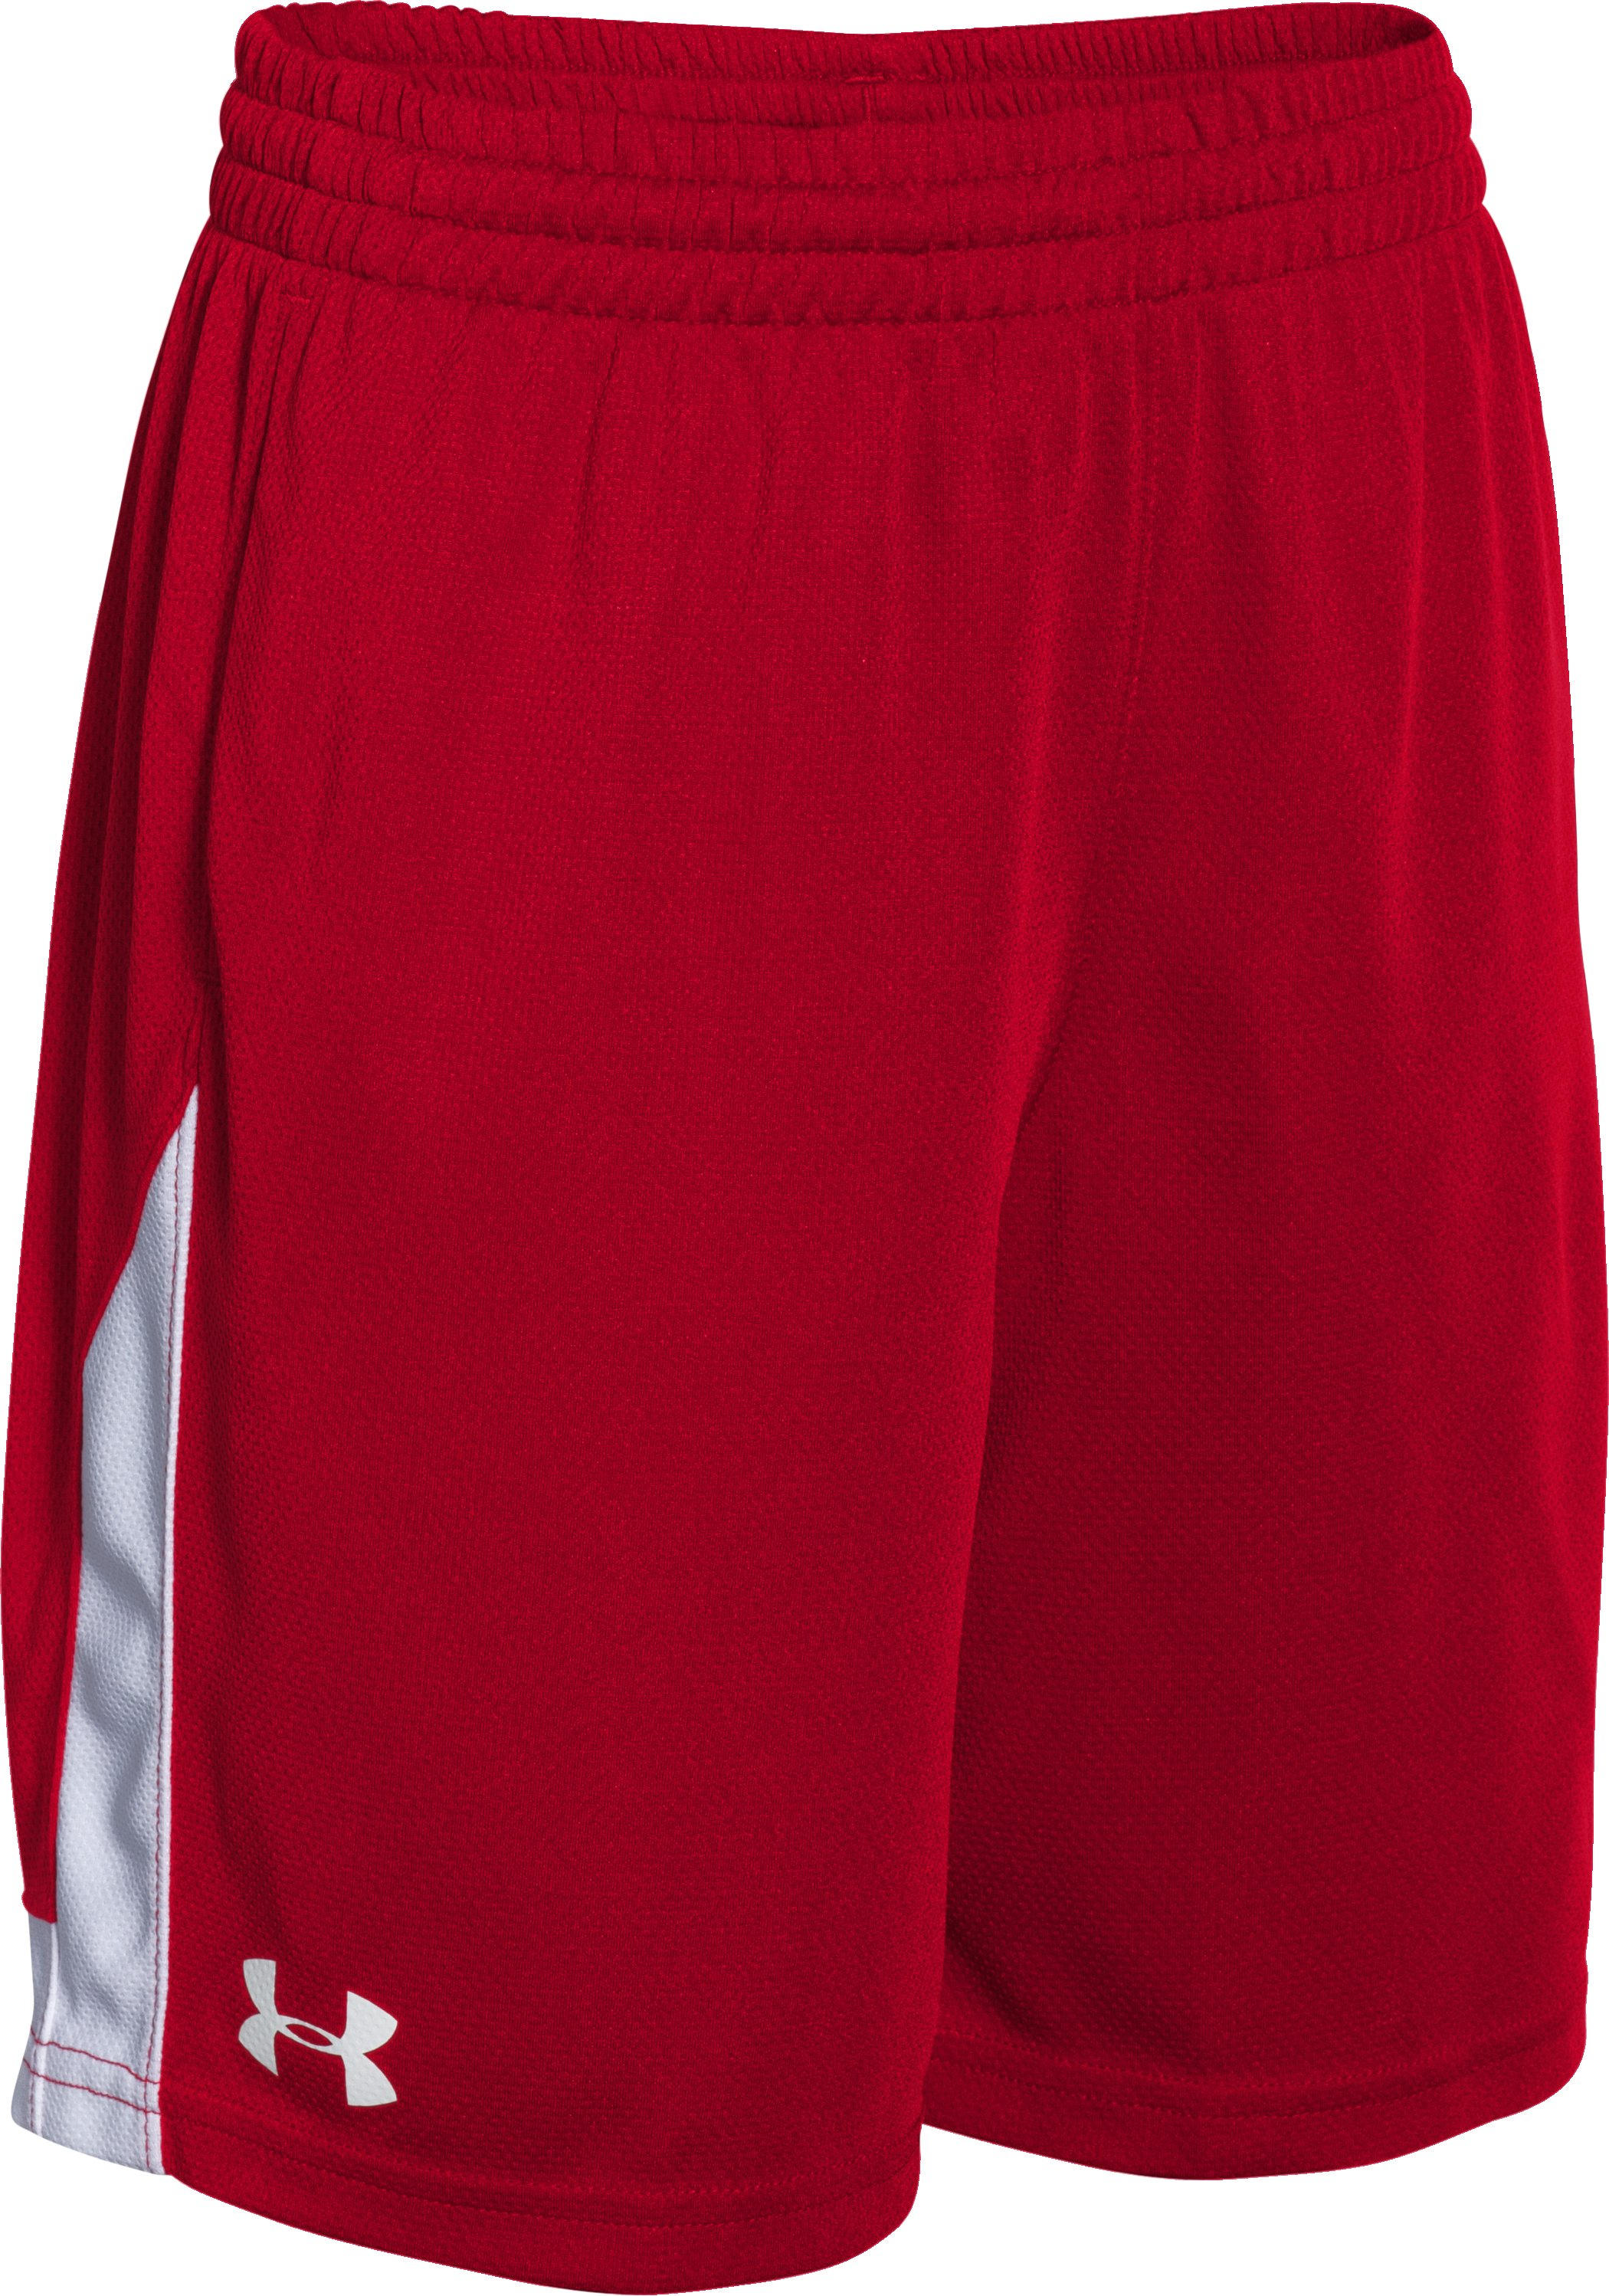 Boys' UA Assist Shorts, Red